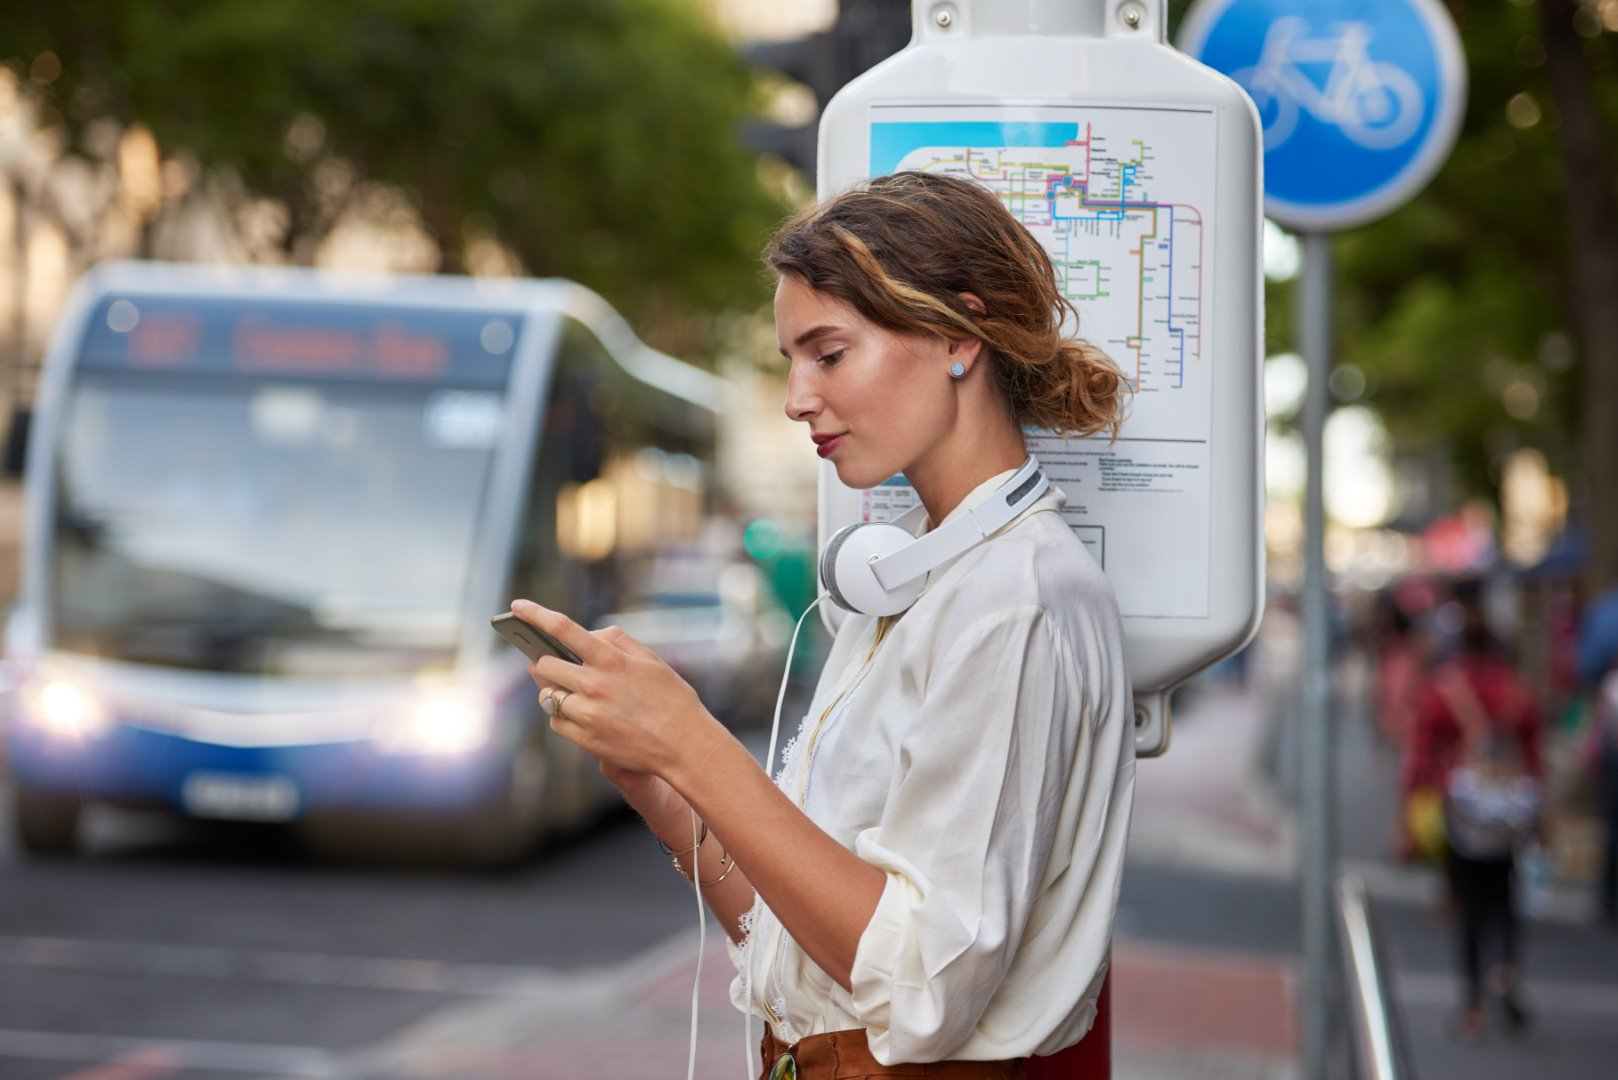 Lady using transit text SMS